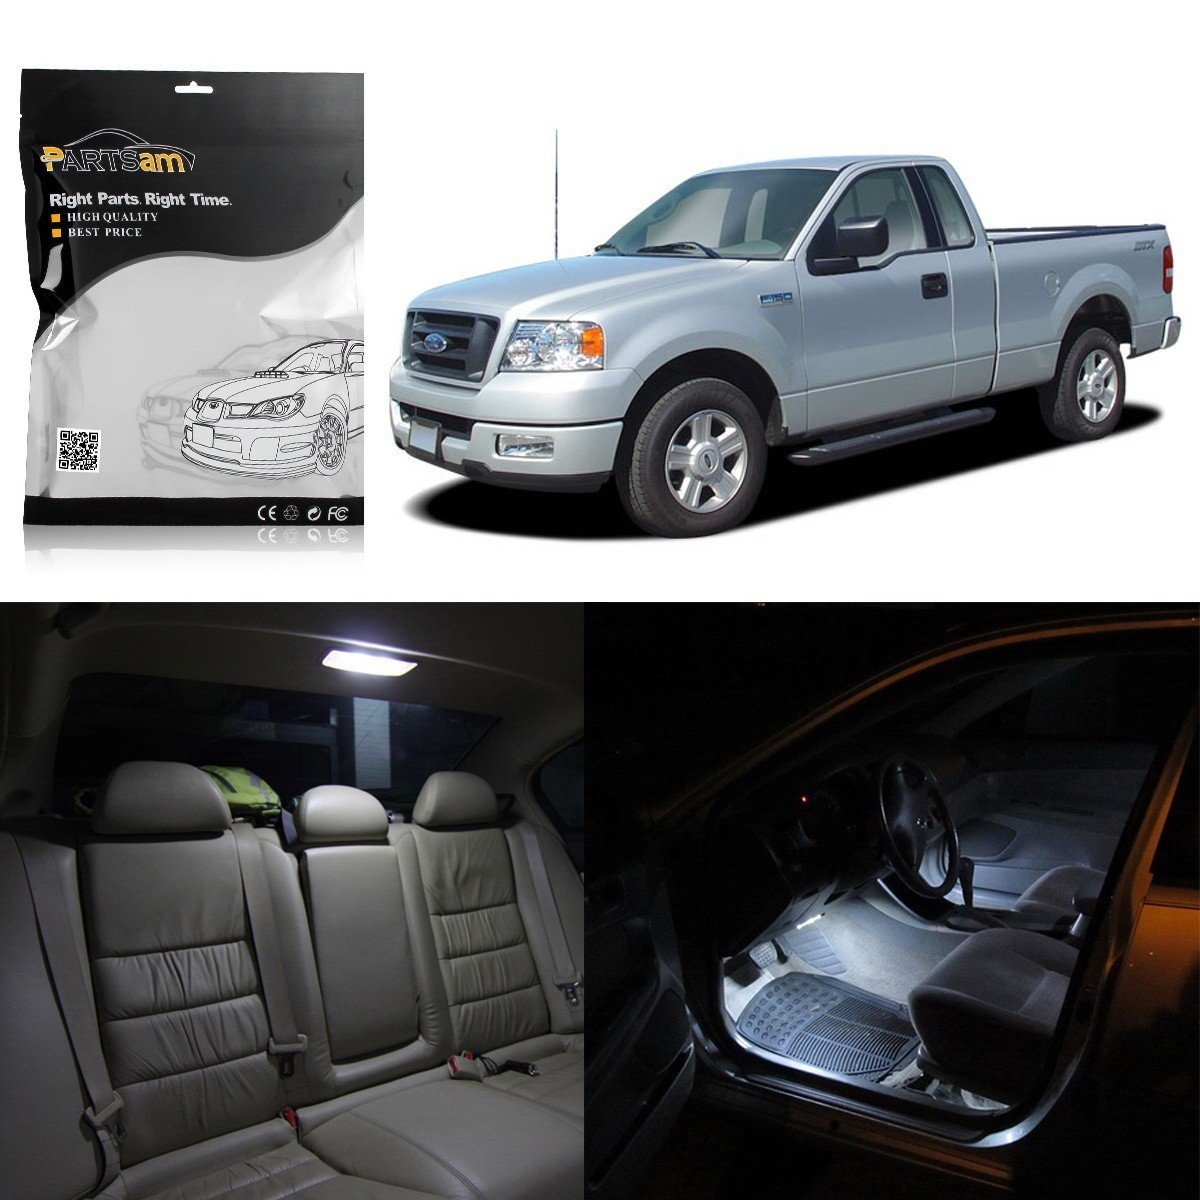 Partsam 10 White Interior LED Light Package Kit for Ford F-150 2004 2005 2006 2007 2008 2009 2010 2011 2012 with Tool Kit